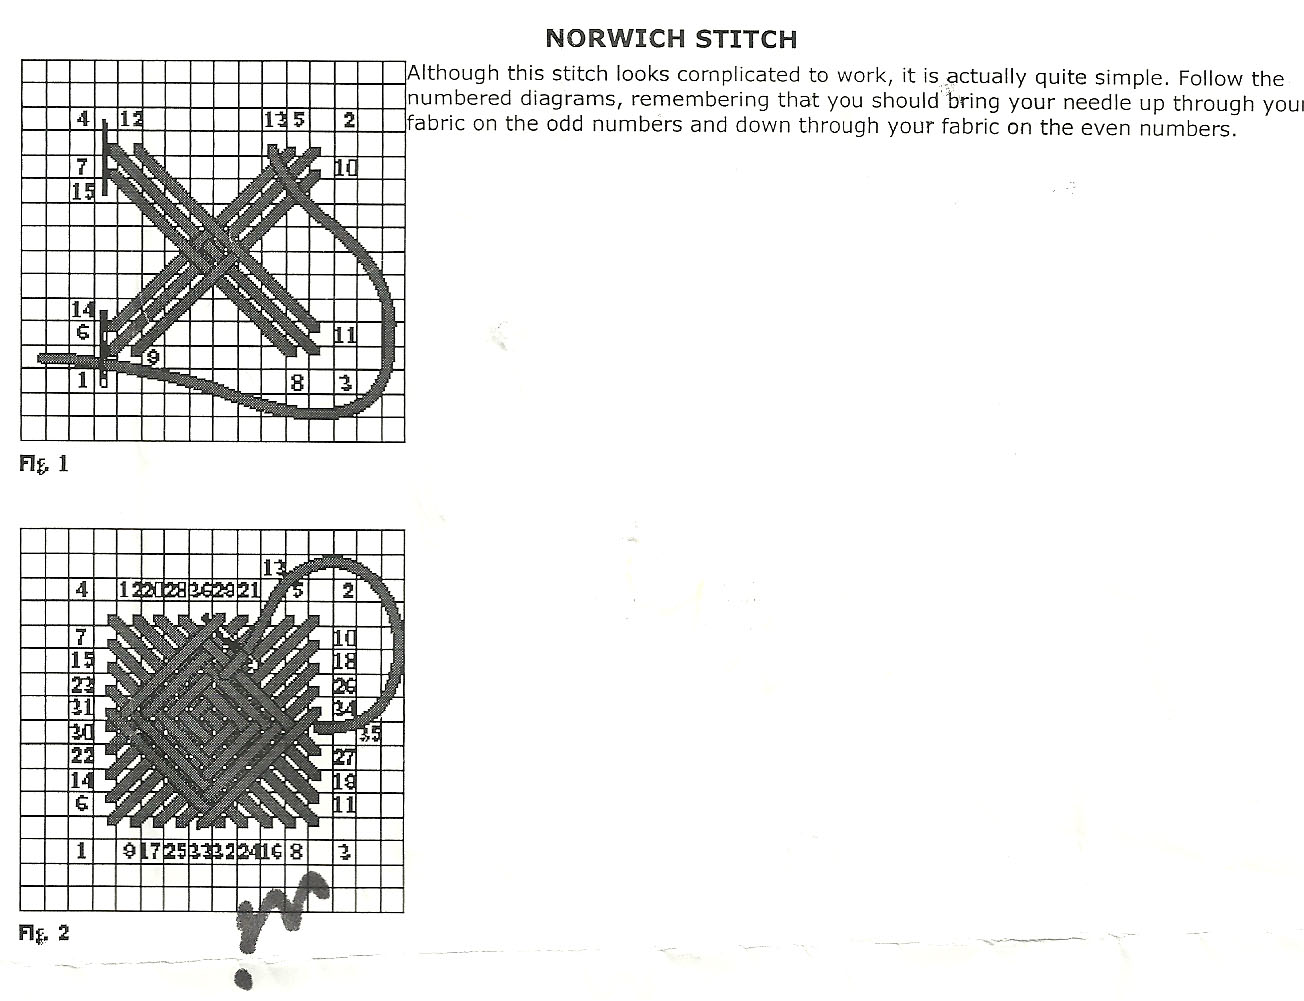 Nancy's Needlework: Norwich Stitch Diagram